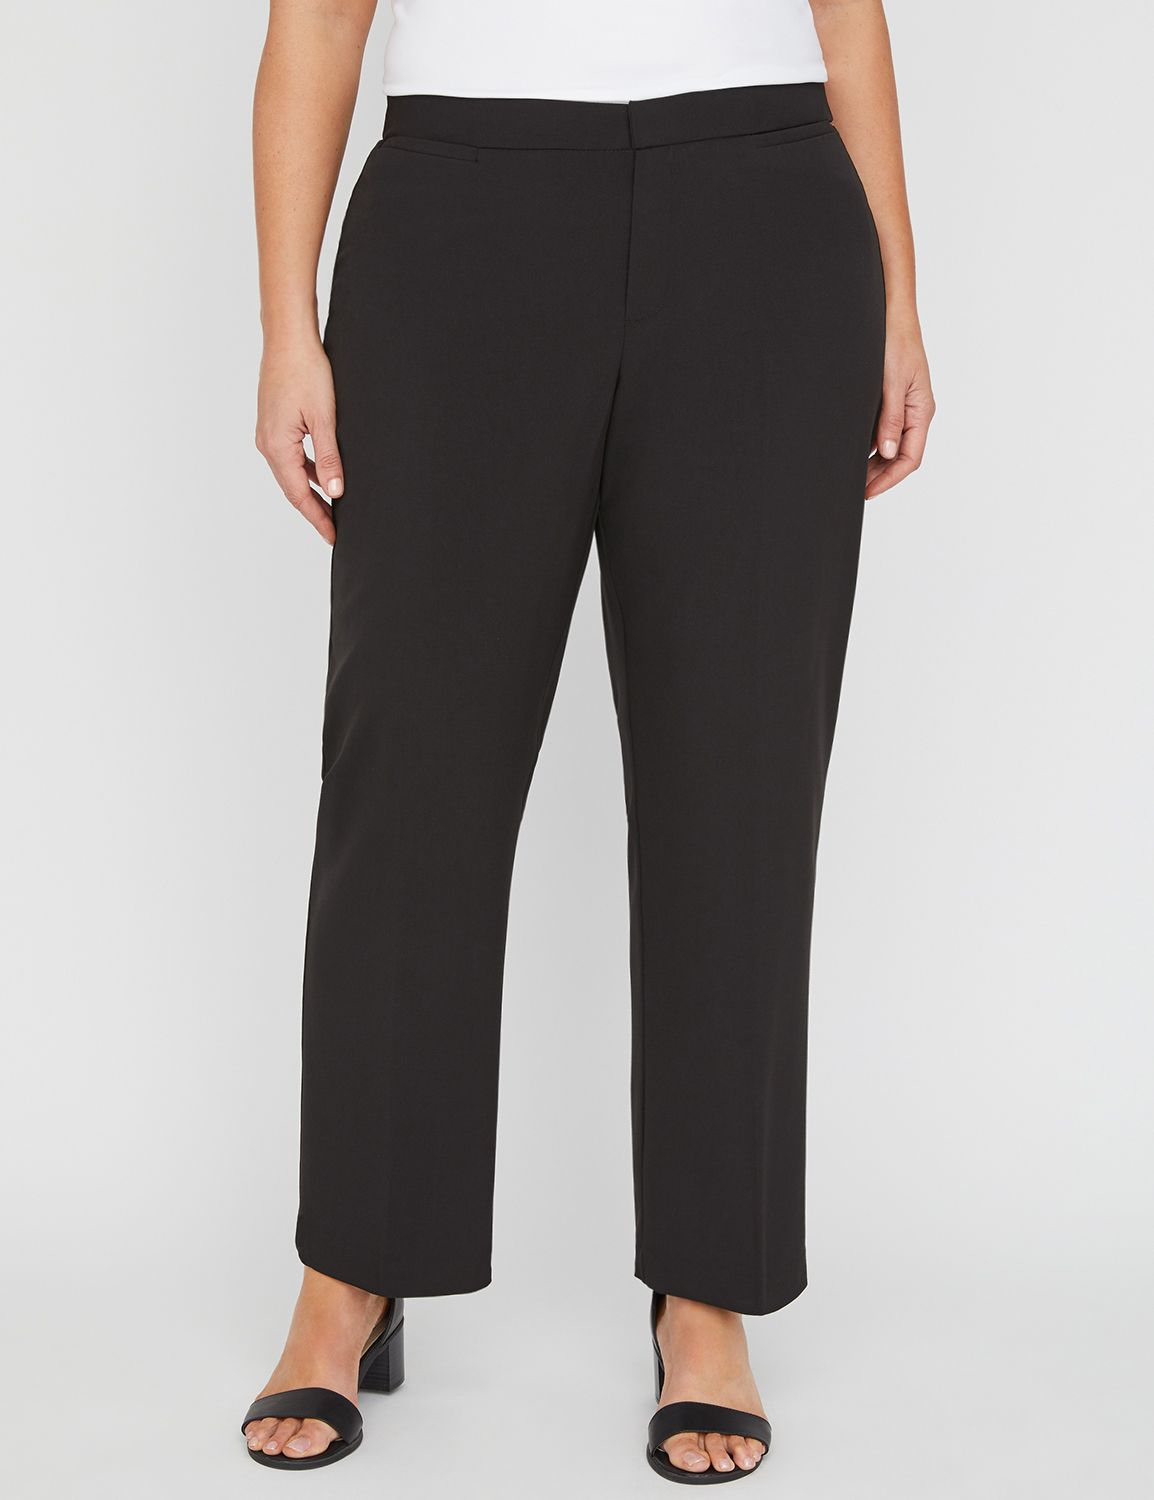 Right Fit Pant (Moderately Curvy) Right Fit Pant (Moderately Curvy) MP-300009890